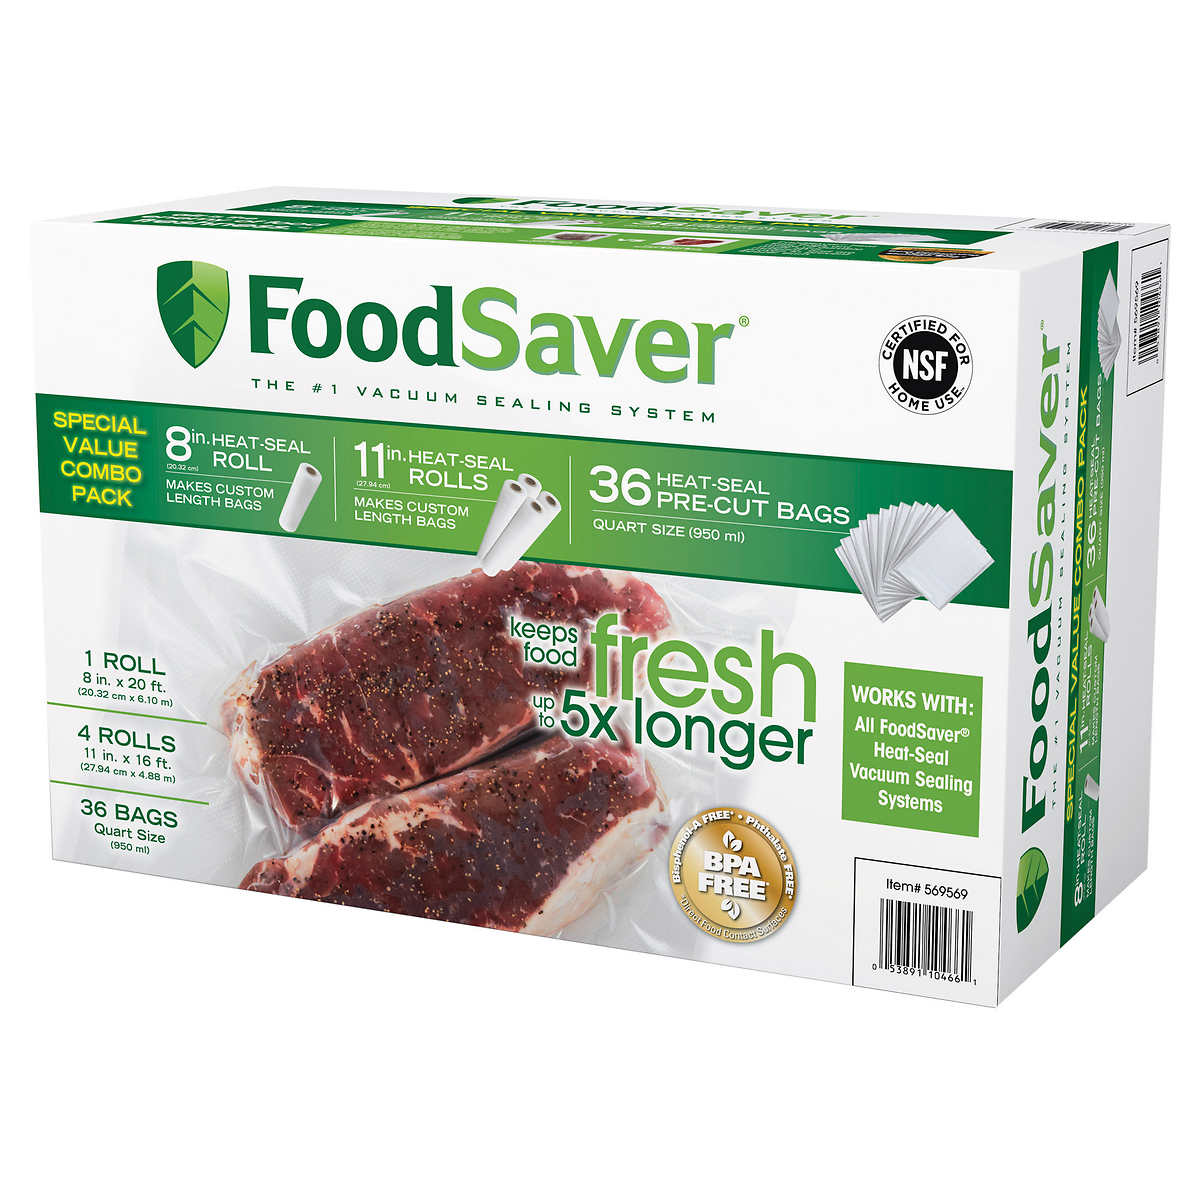 Foodsaver Special Value Combo Pack Multi Size Rolls Amp Bags